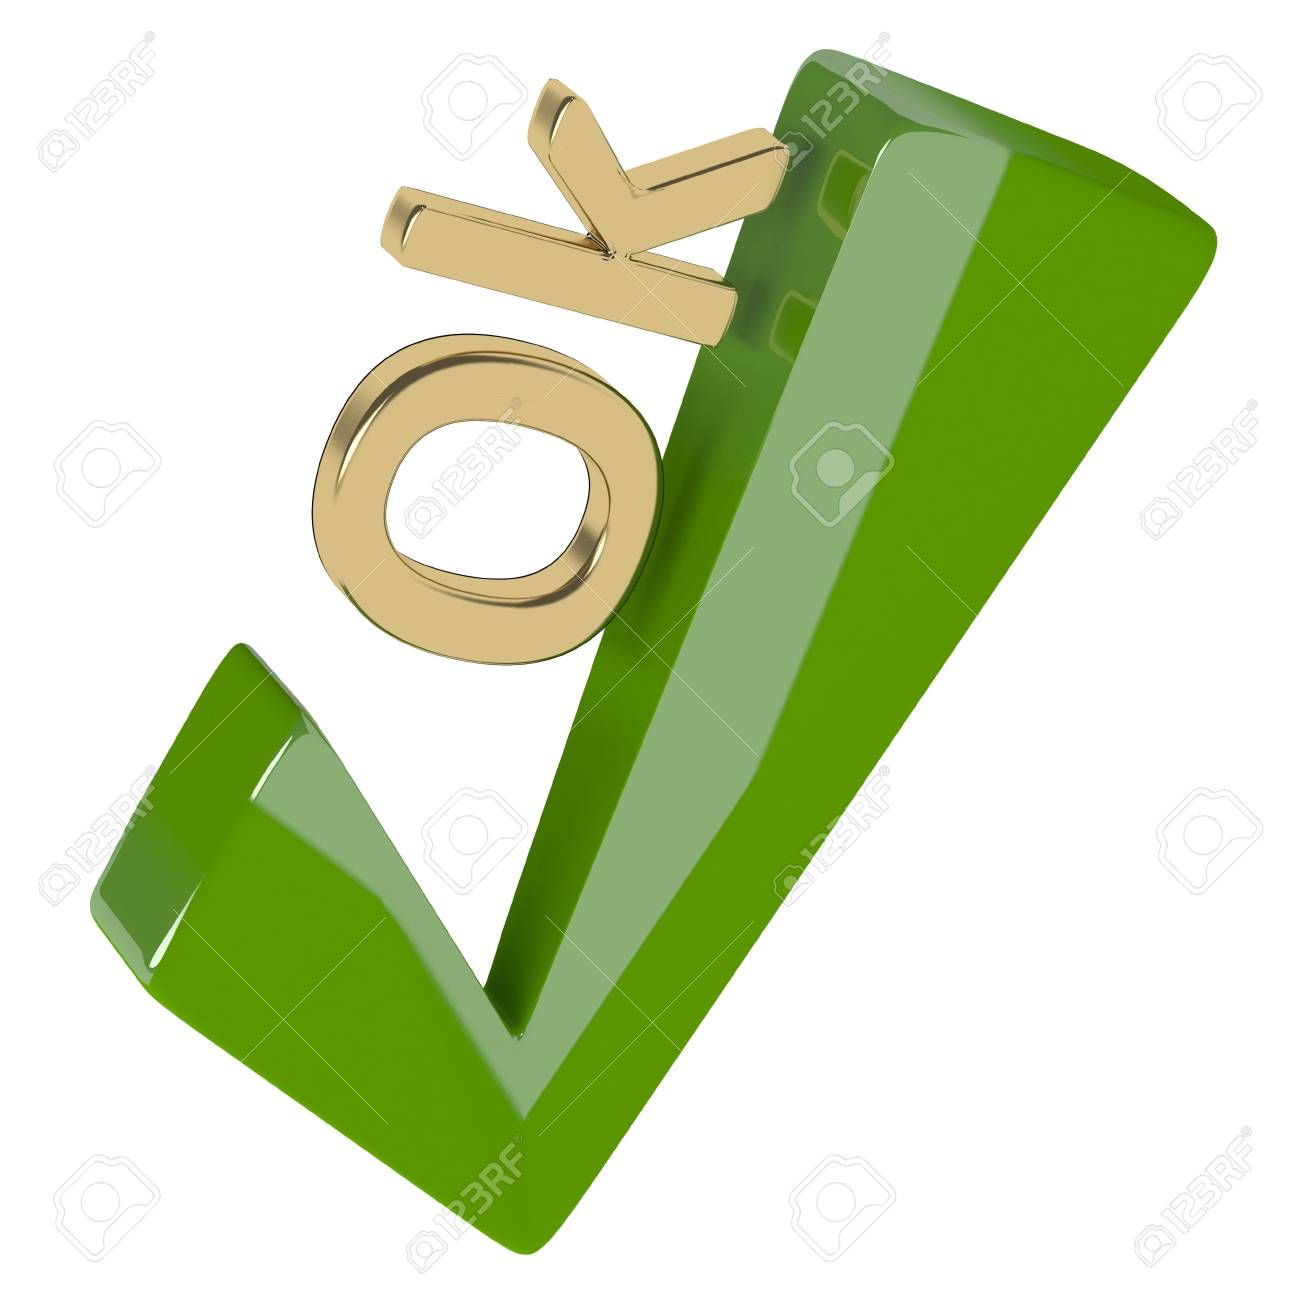 Success concept Stock Photo - 20119548